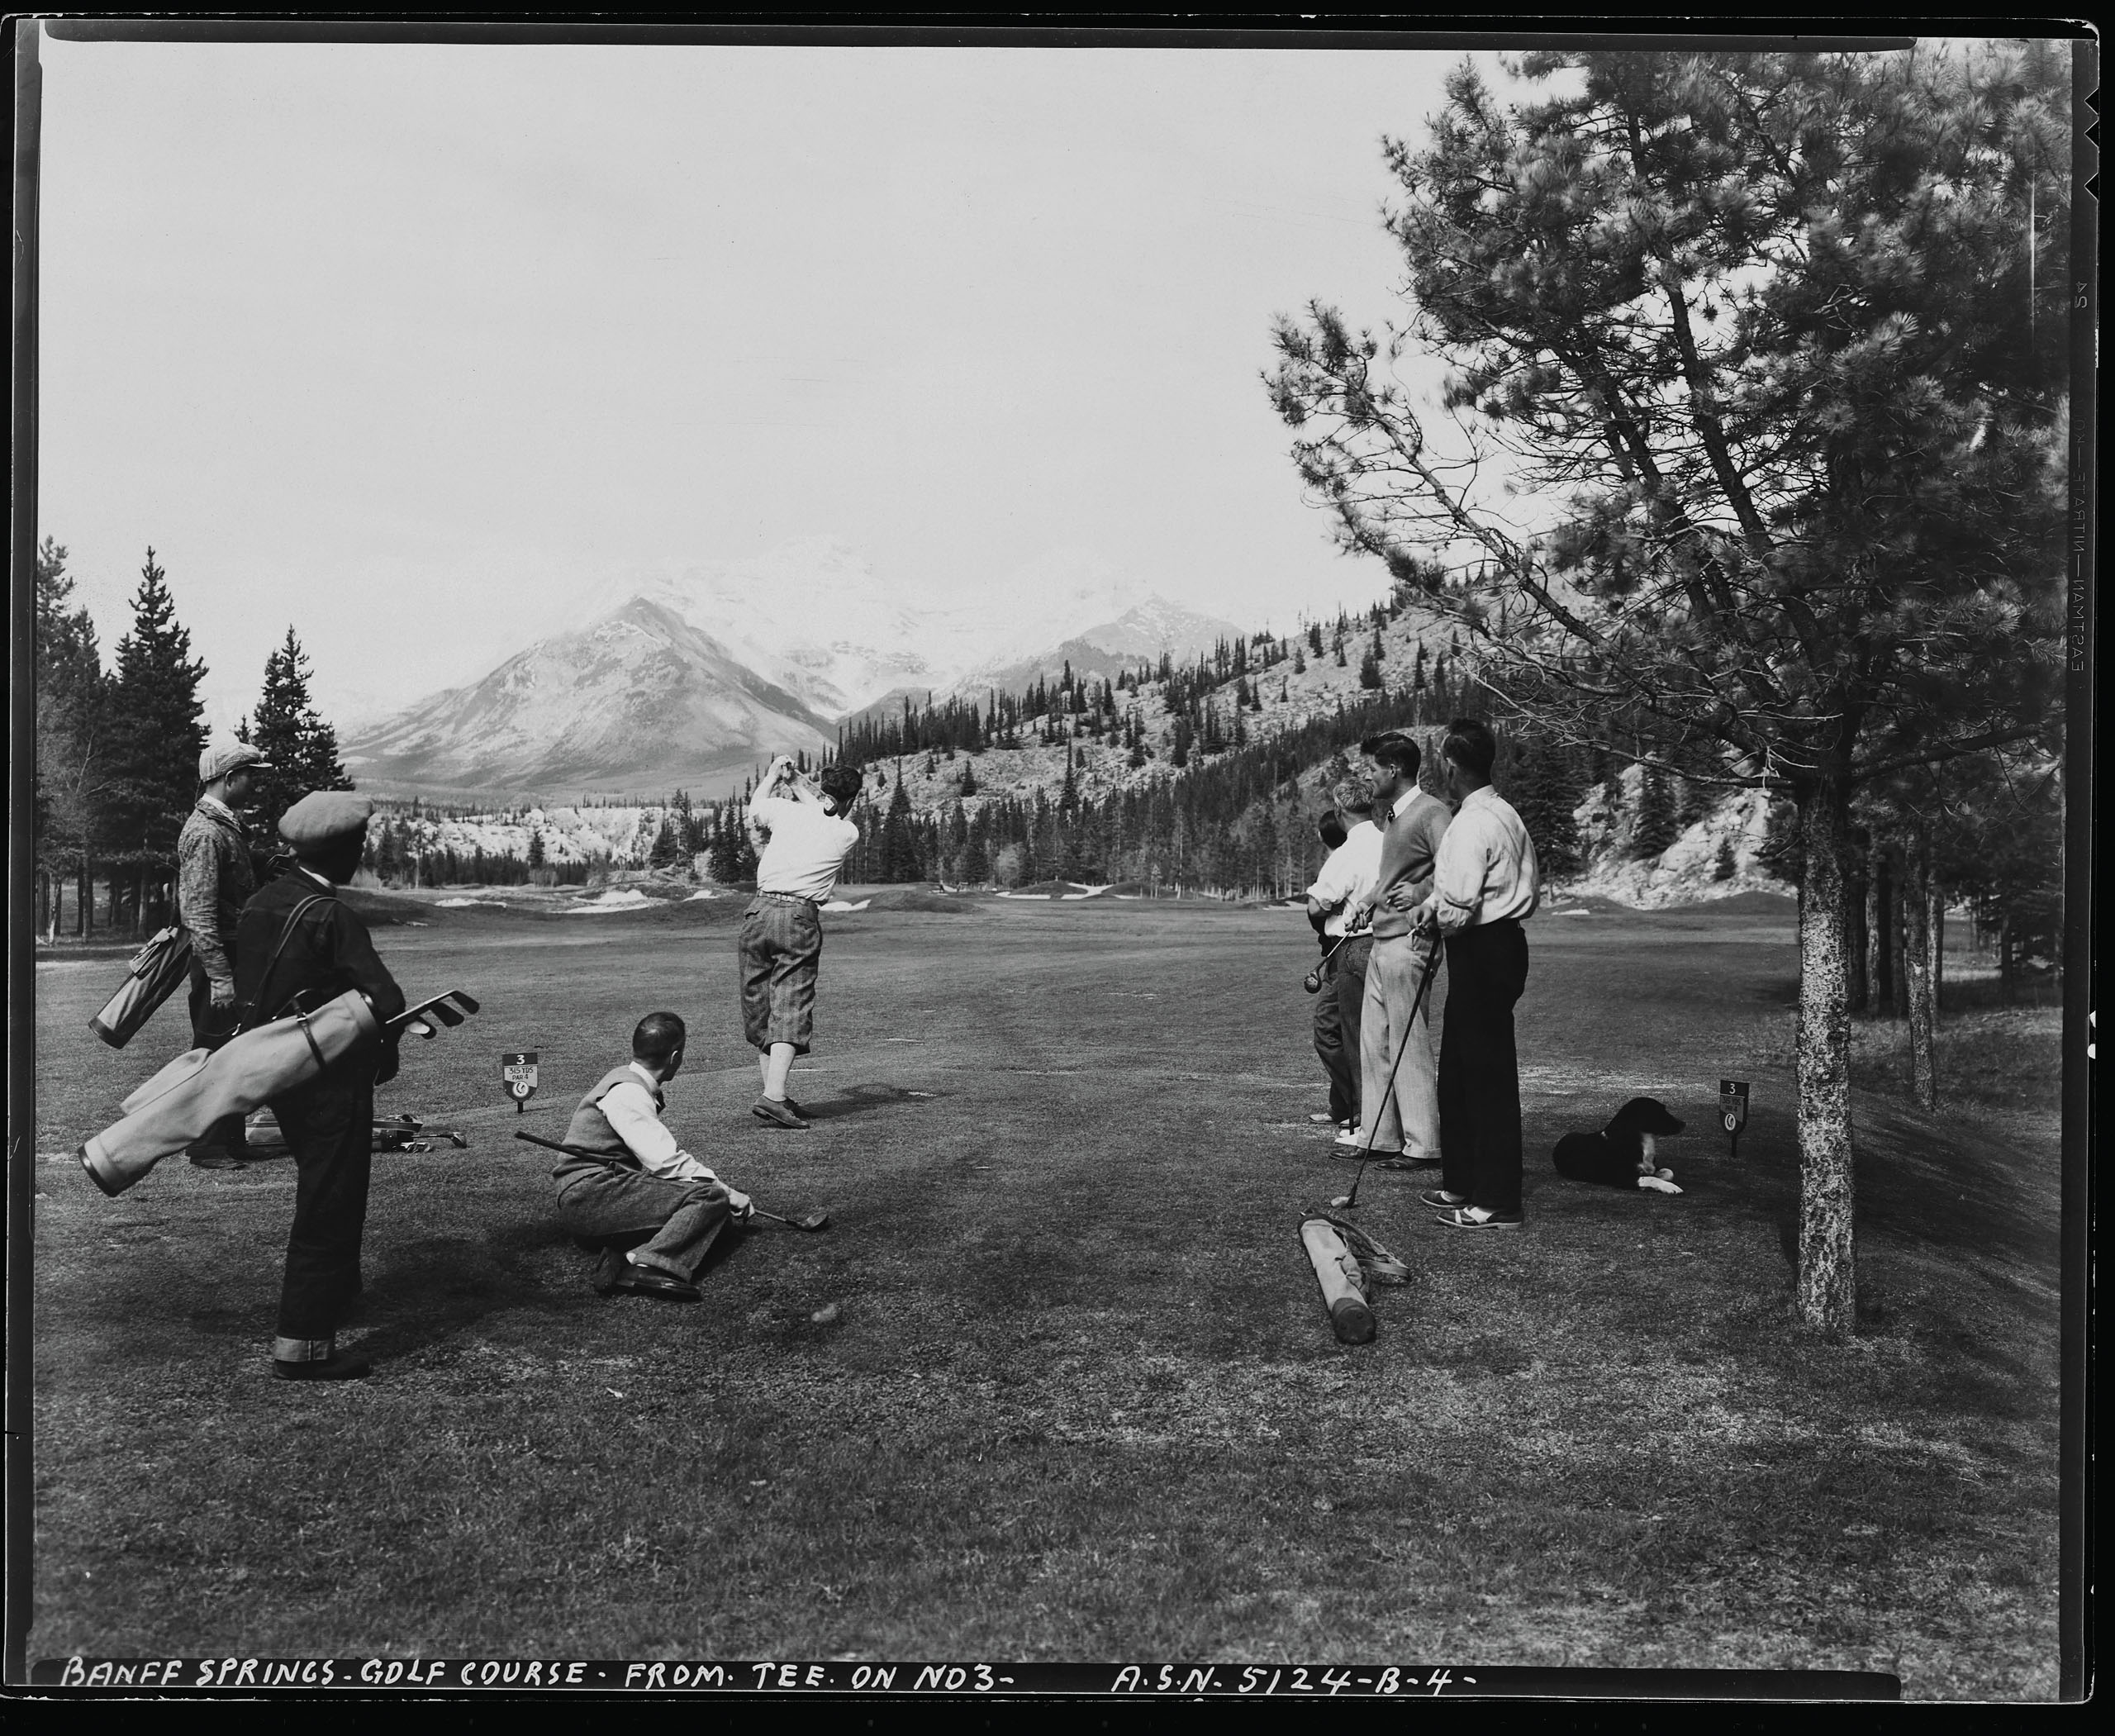 When the Banff Springs Golf Course opened, guests were treated to stunning views of the Canadian Rockies on nearly every shot. As Banff's status as a Canadian national park was cemented, tree removal became a more complex discussion. As a result, some of the intended wide-playing corridors have shrunk, limiting the strategy and angles of the design. Photo by Hulton Deutsch via Getty Images